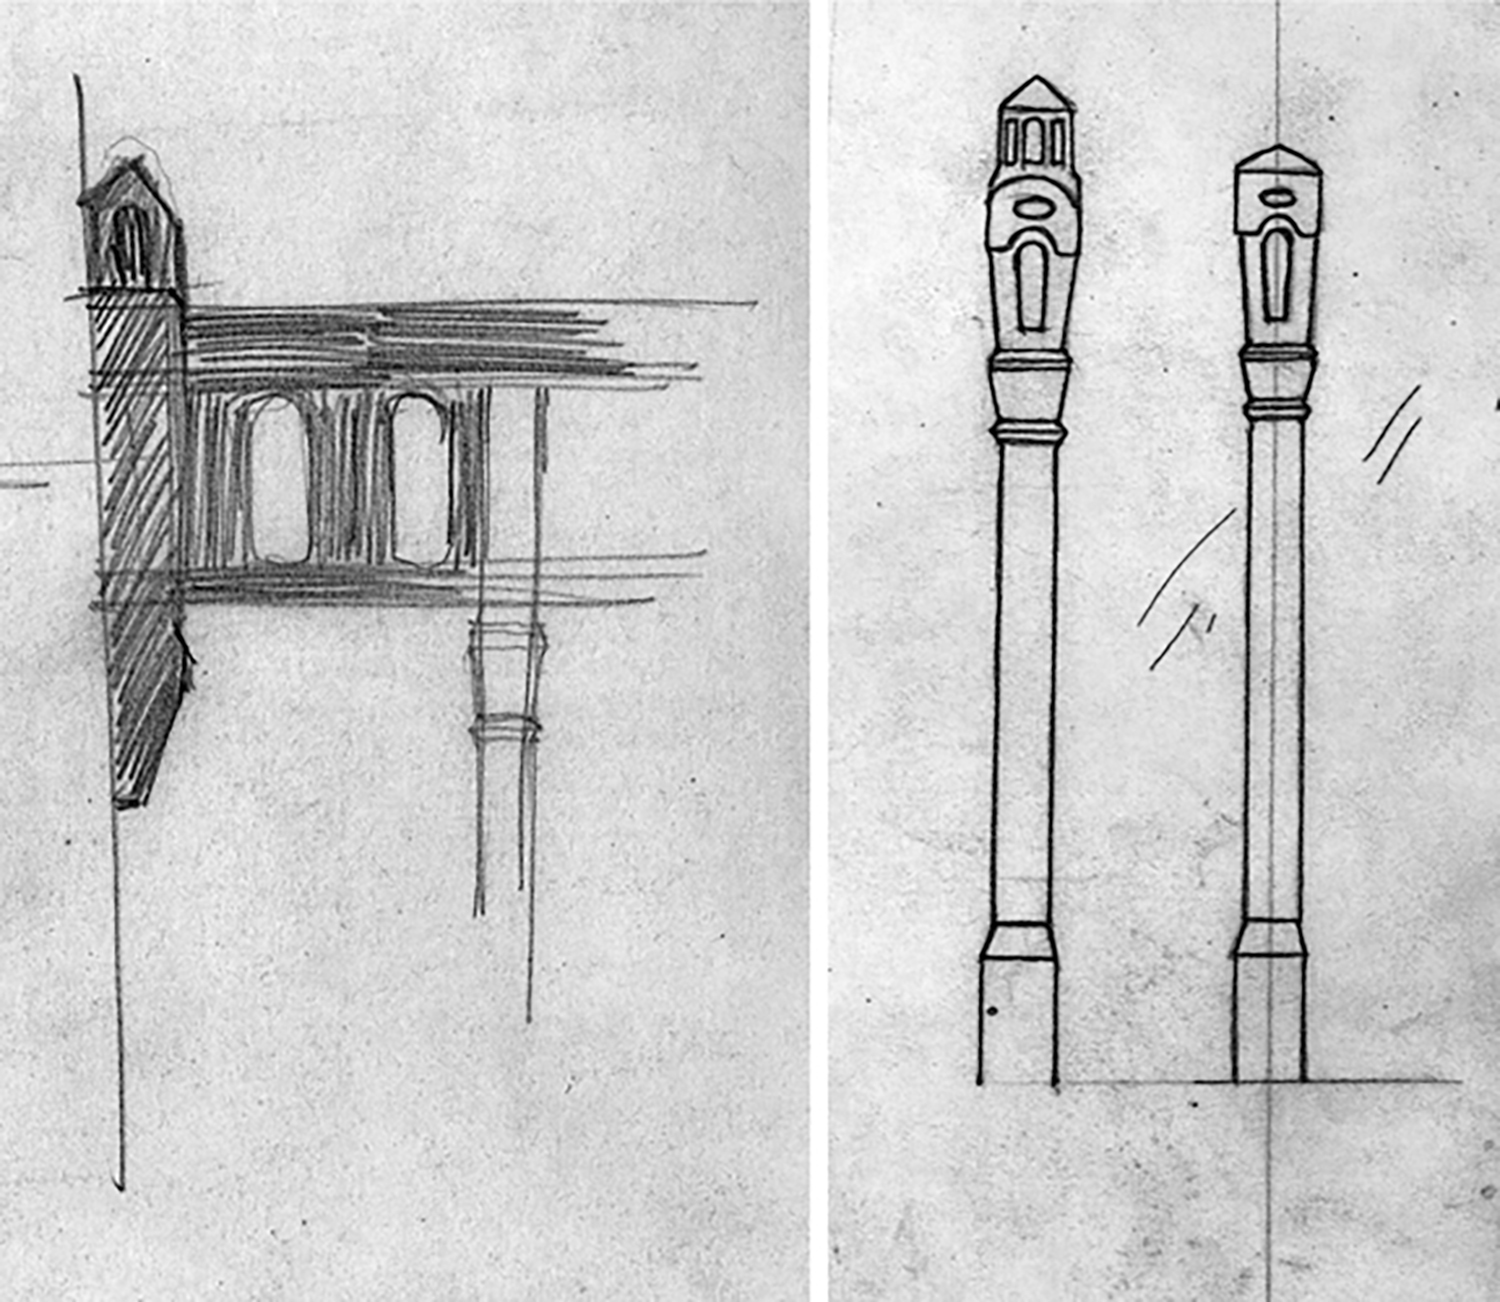 Figure 14: These rough sketches by Parke Edwards appear to be design ideas for Glencairn's third-floor balcony railing.